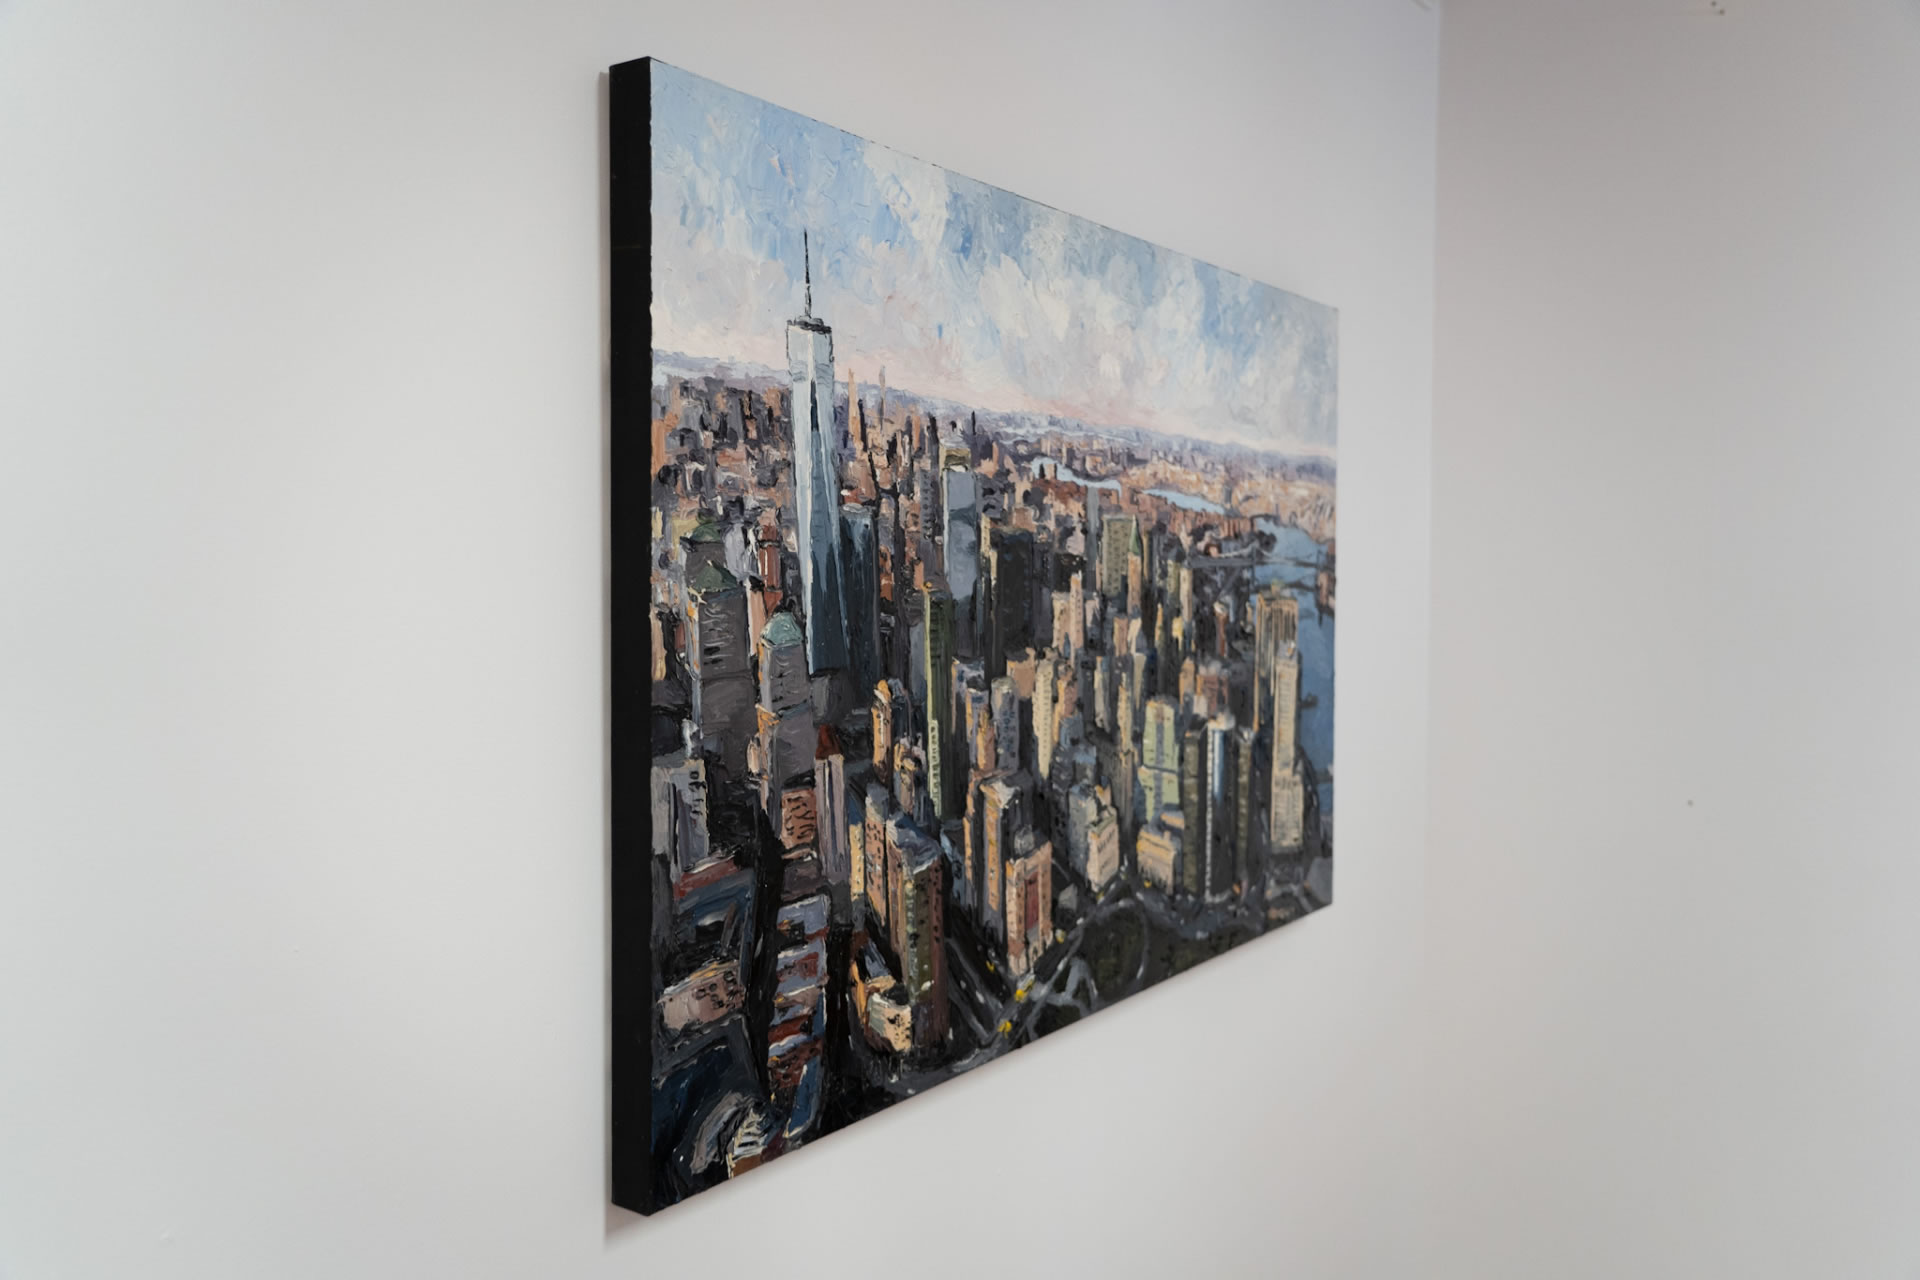 Mike-Fantuz-NYC-Financial-District-2020-oil-on-canvas-30x48-3900-Side-Online-Art-Galleries